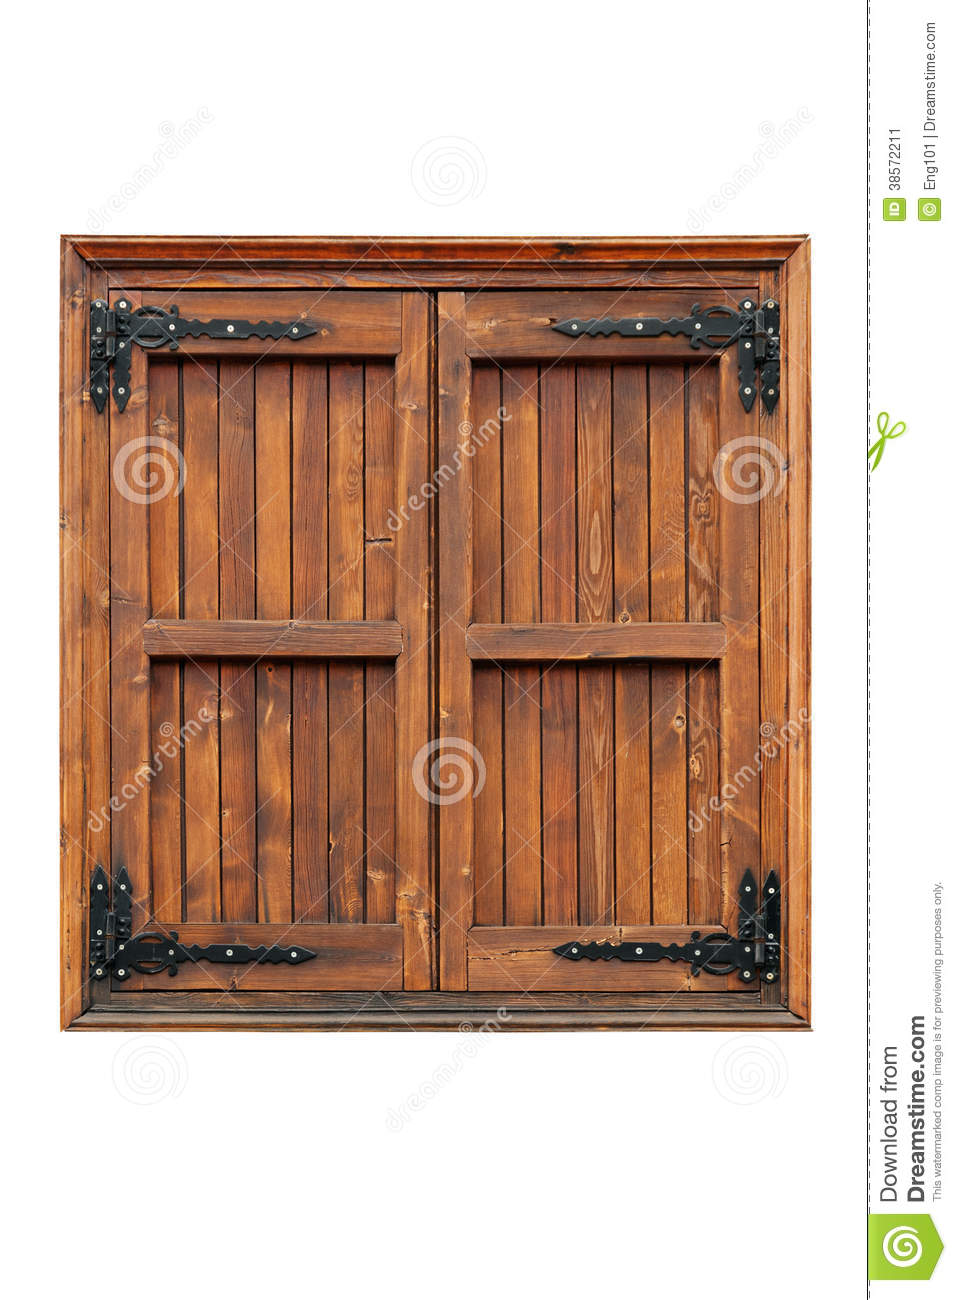 Wood Shutters Closed : Wooden casement window with shutters closed stock image